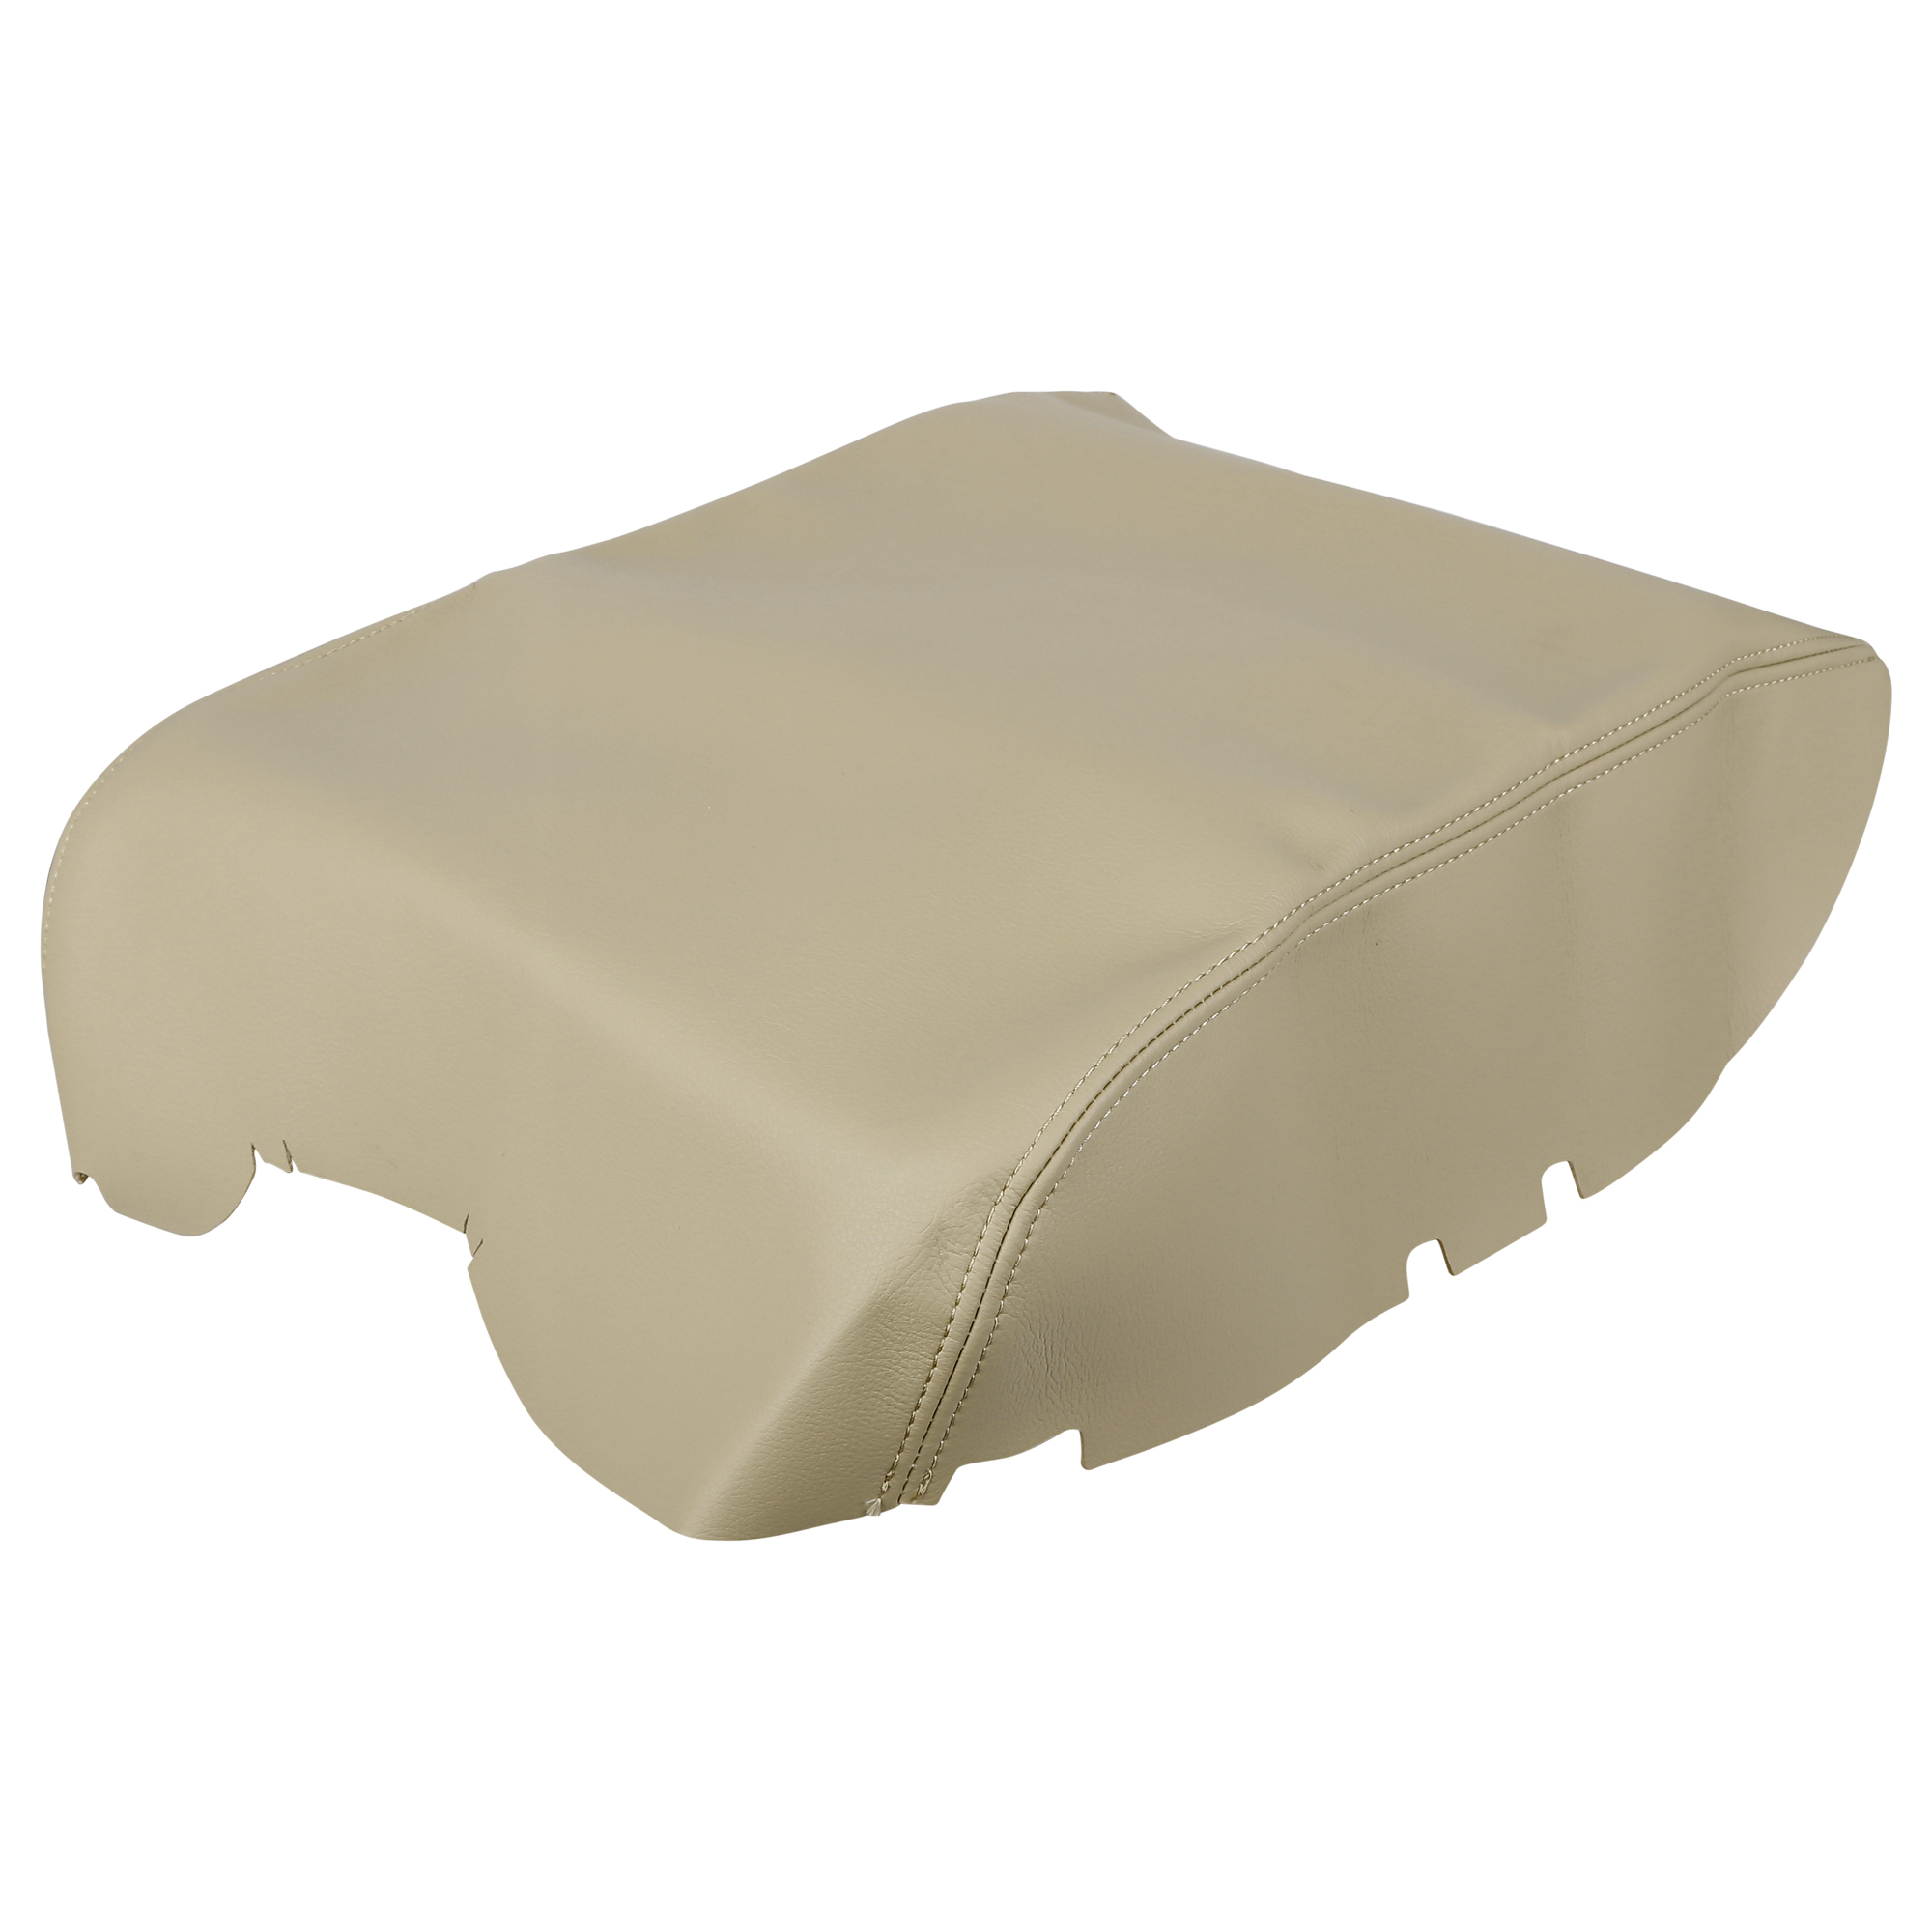 Car Center Console Lid Armrest Pad Cover Beige for Toyota Tundra 2008-2013